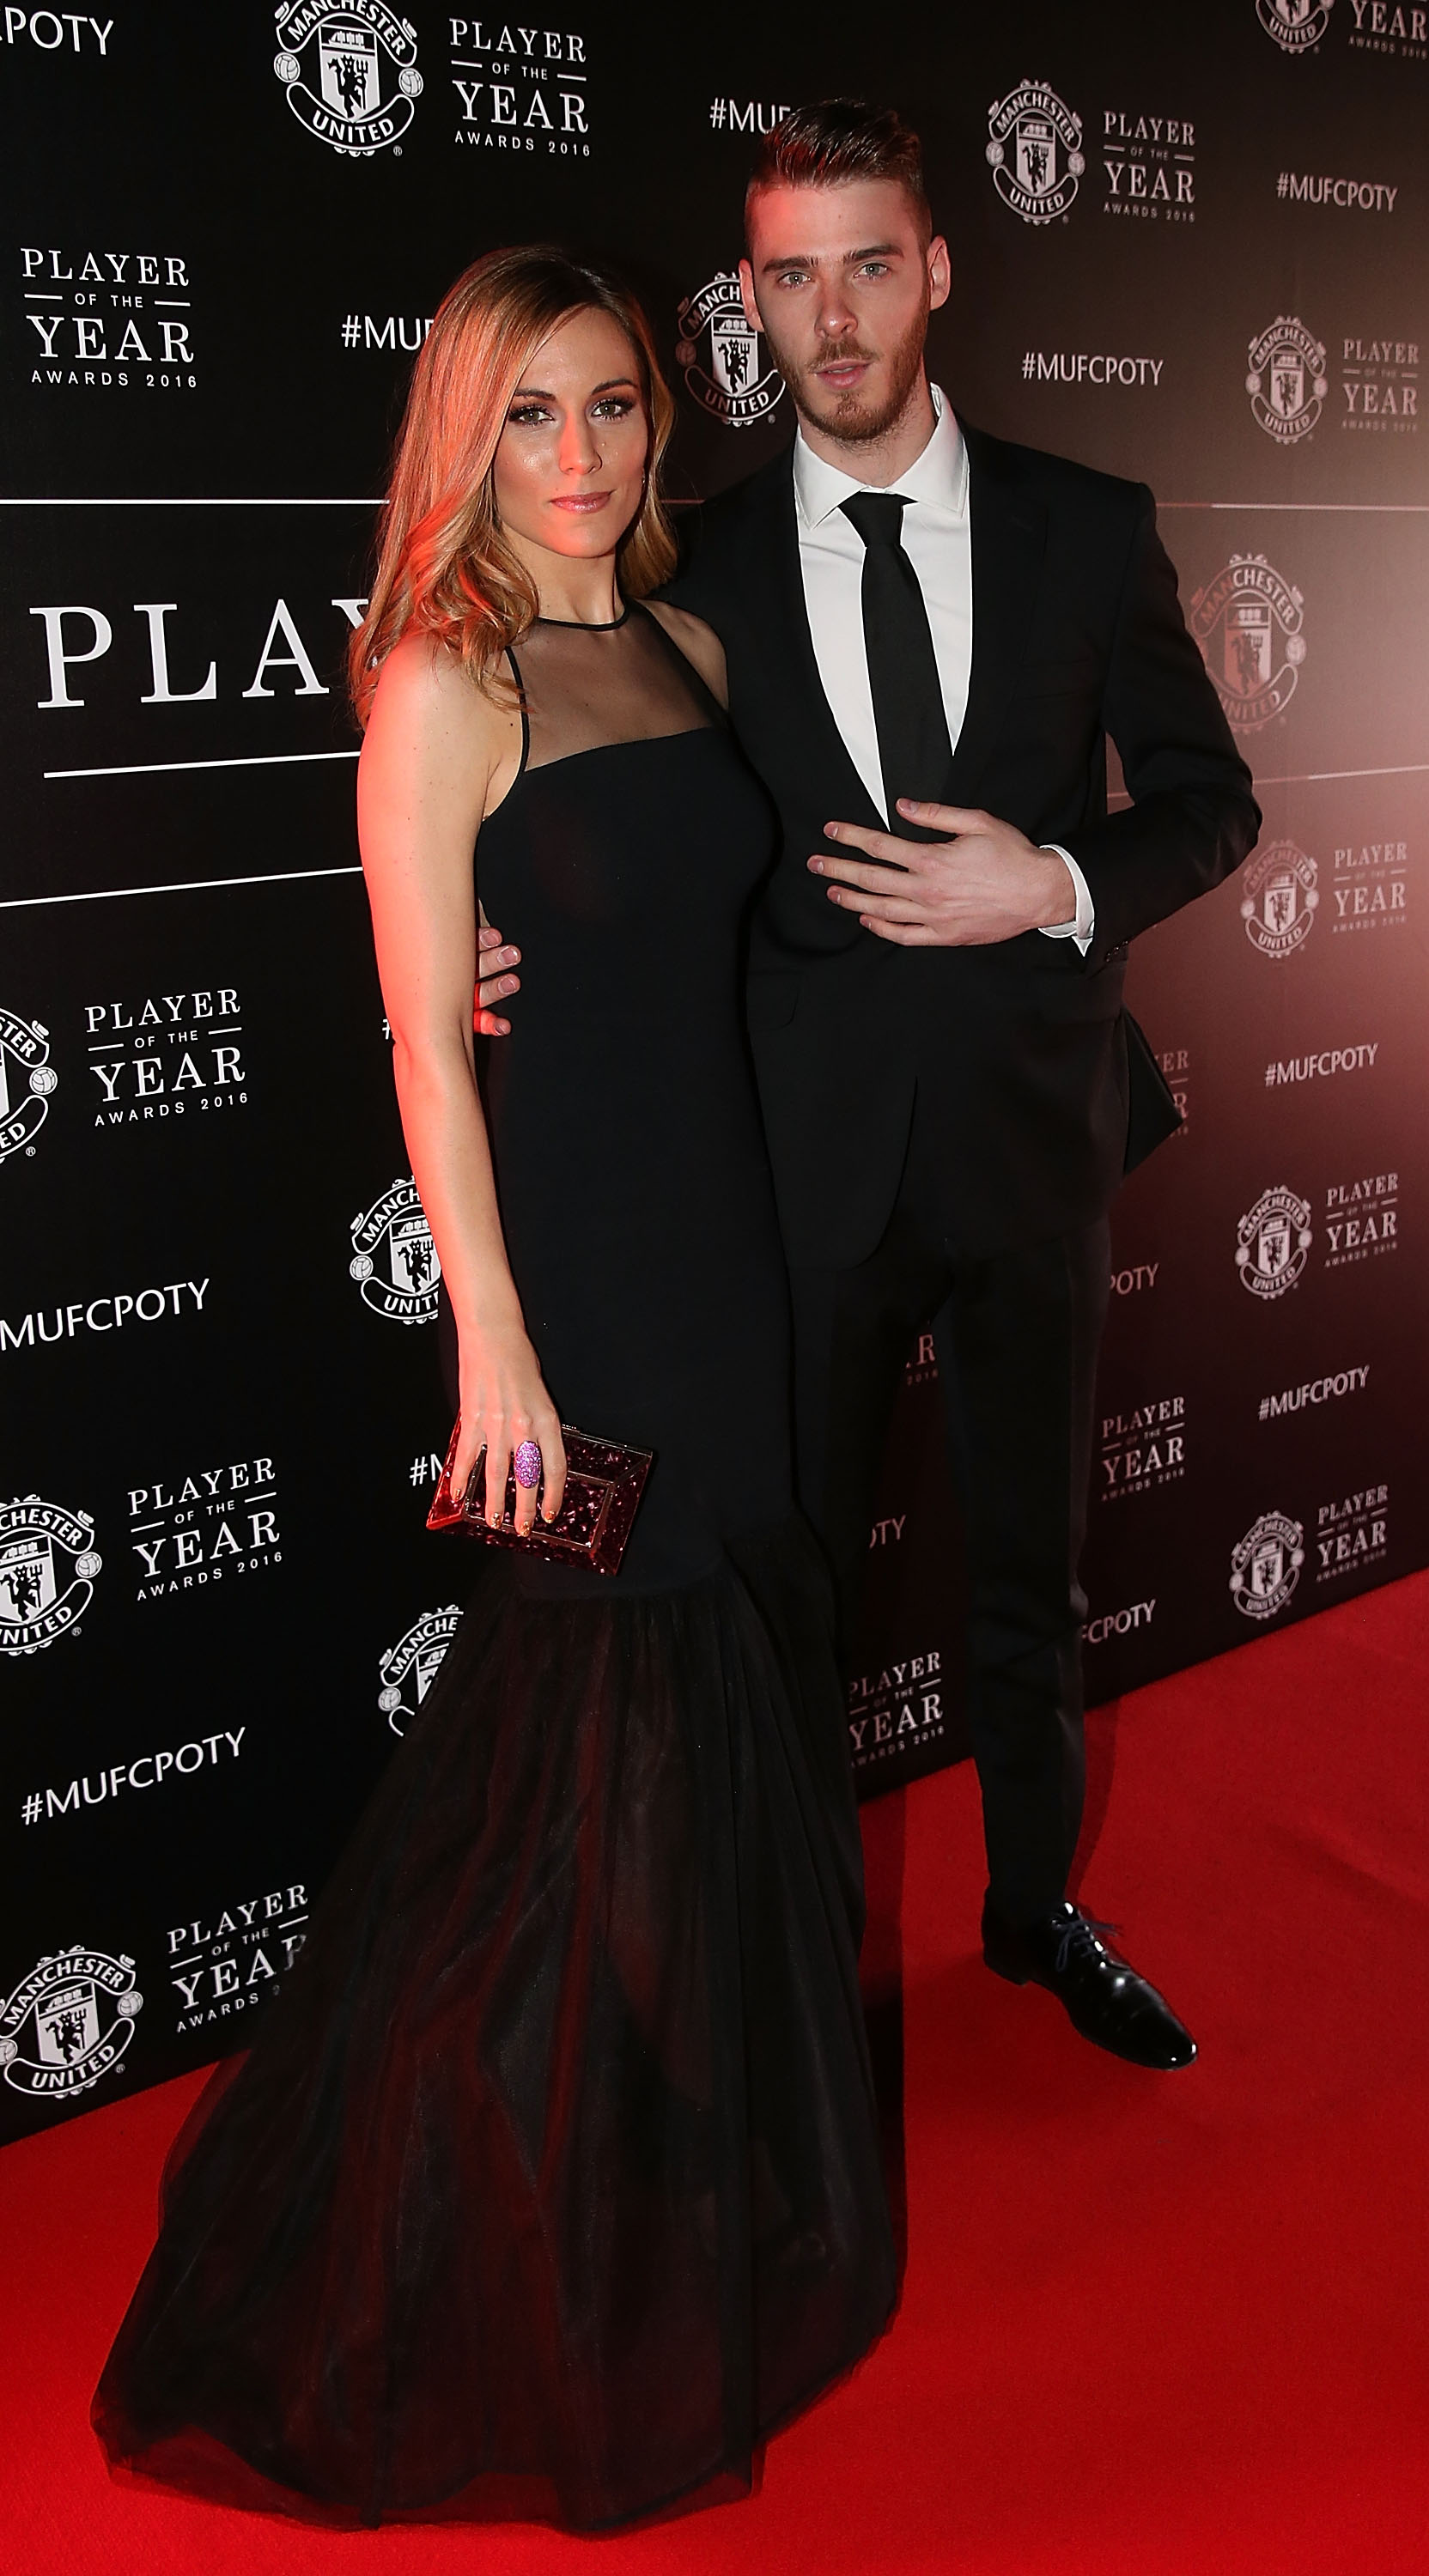 MANCHESTER, ENGLAND - MAY 02: David de Gea of Manchester United arrives with his partner at the club's annual Player of the Year awards at Old Trafford on May 2, 2016 in Manchester, England. (Photo by Matthew Peters/Man Utd via Getty Images)